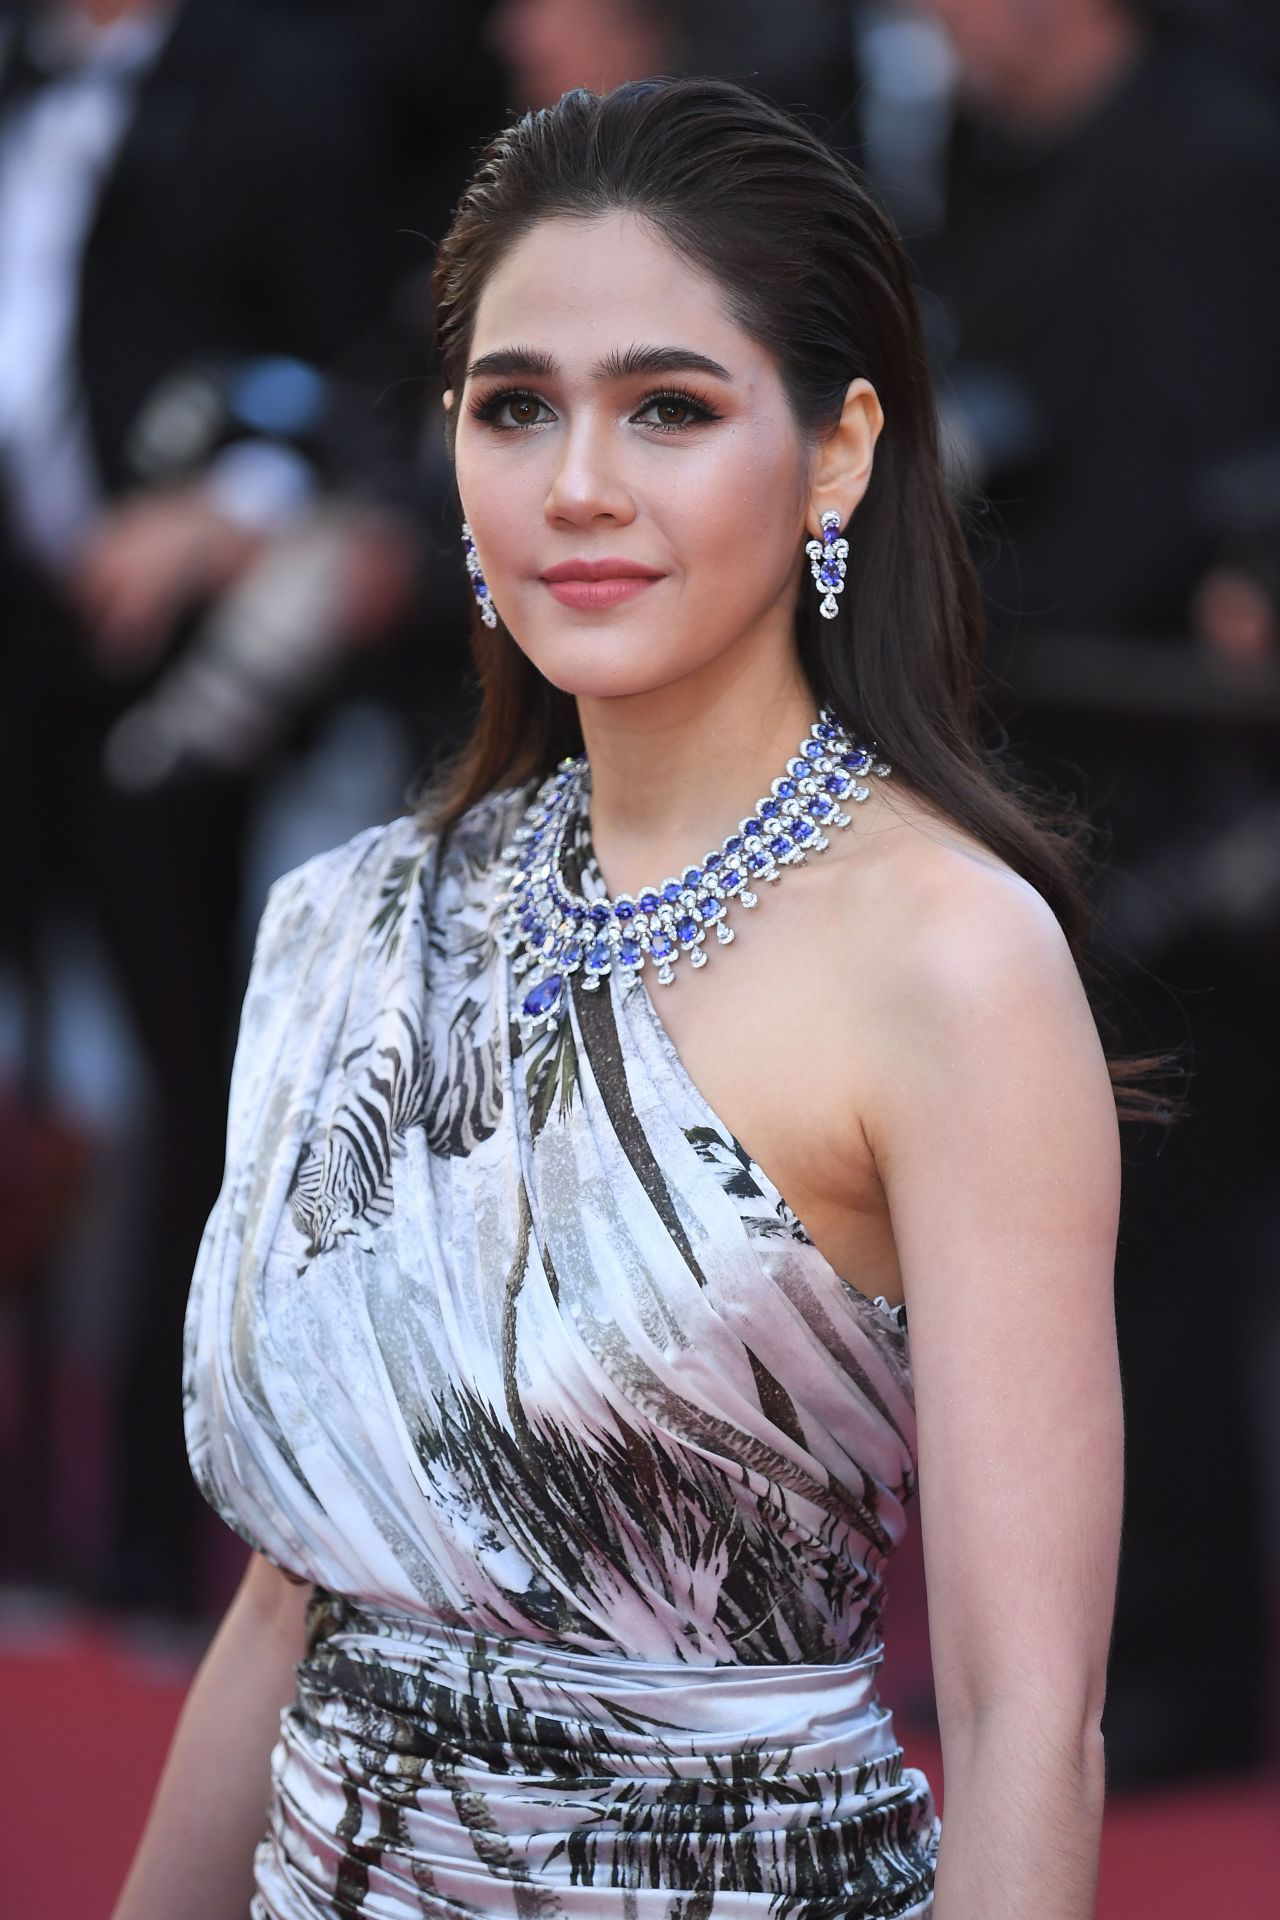 Araya Hargate Girls Of The Sun Premiere At Cannes Film